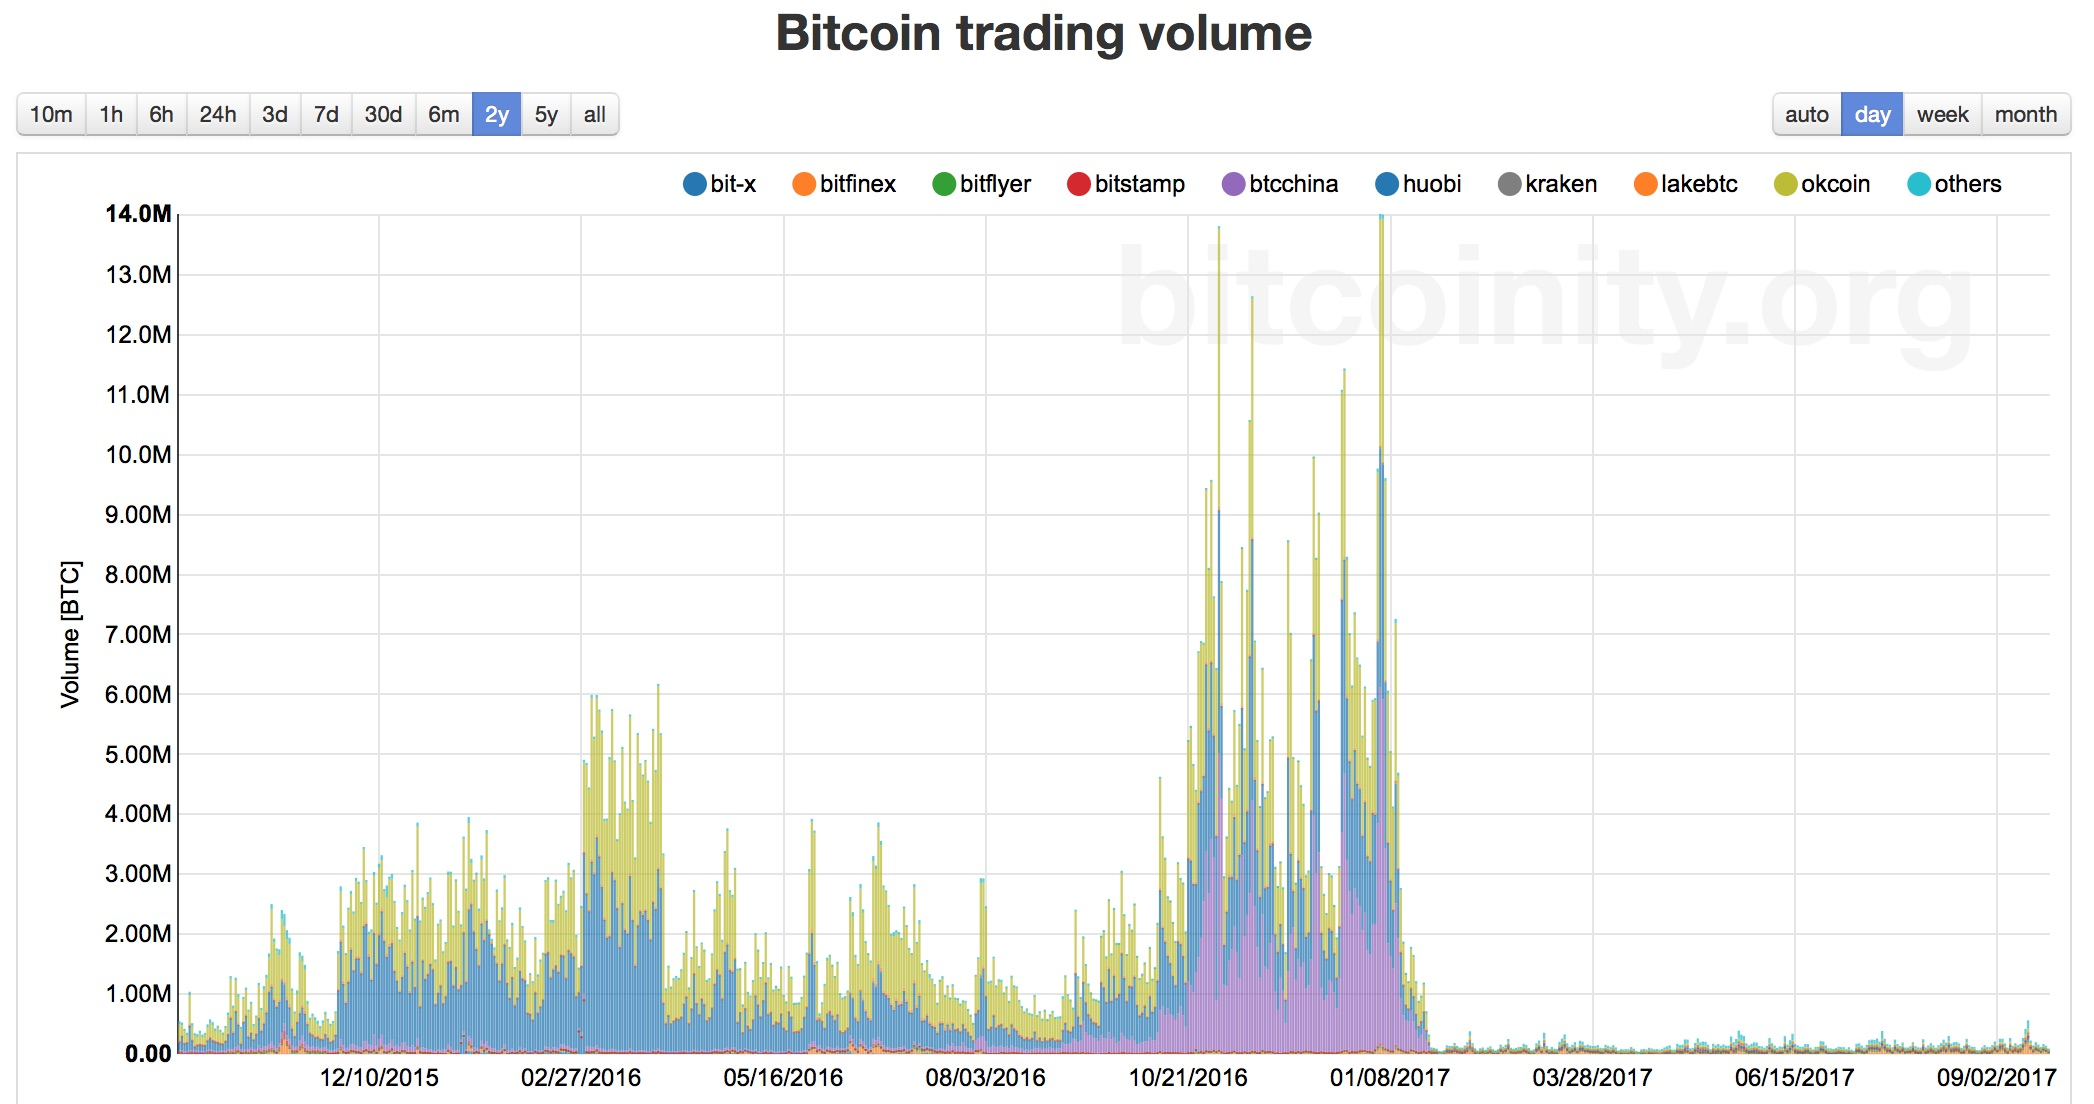 Bitcoin 2 Year Volume